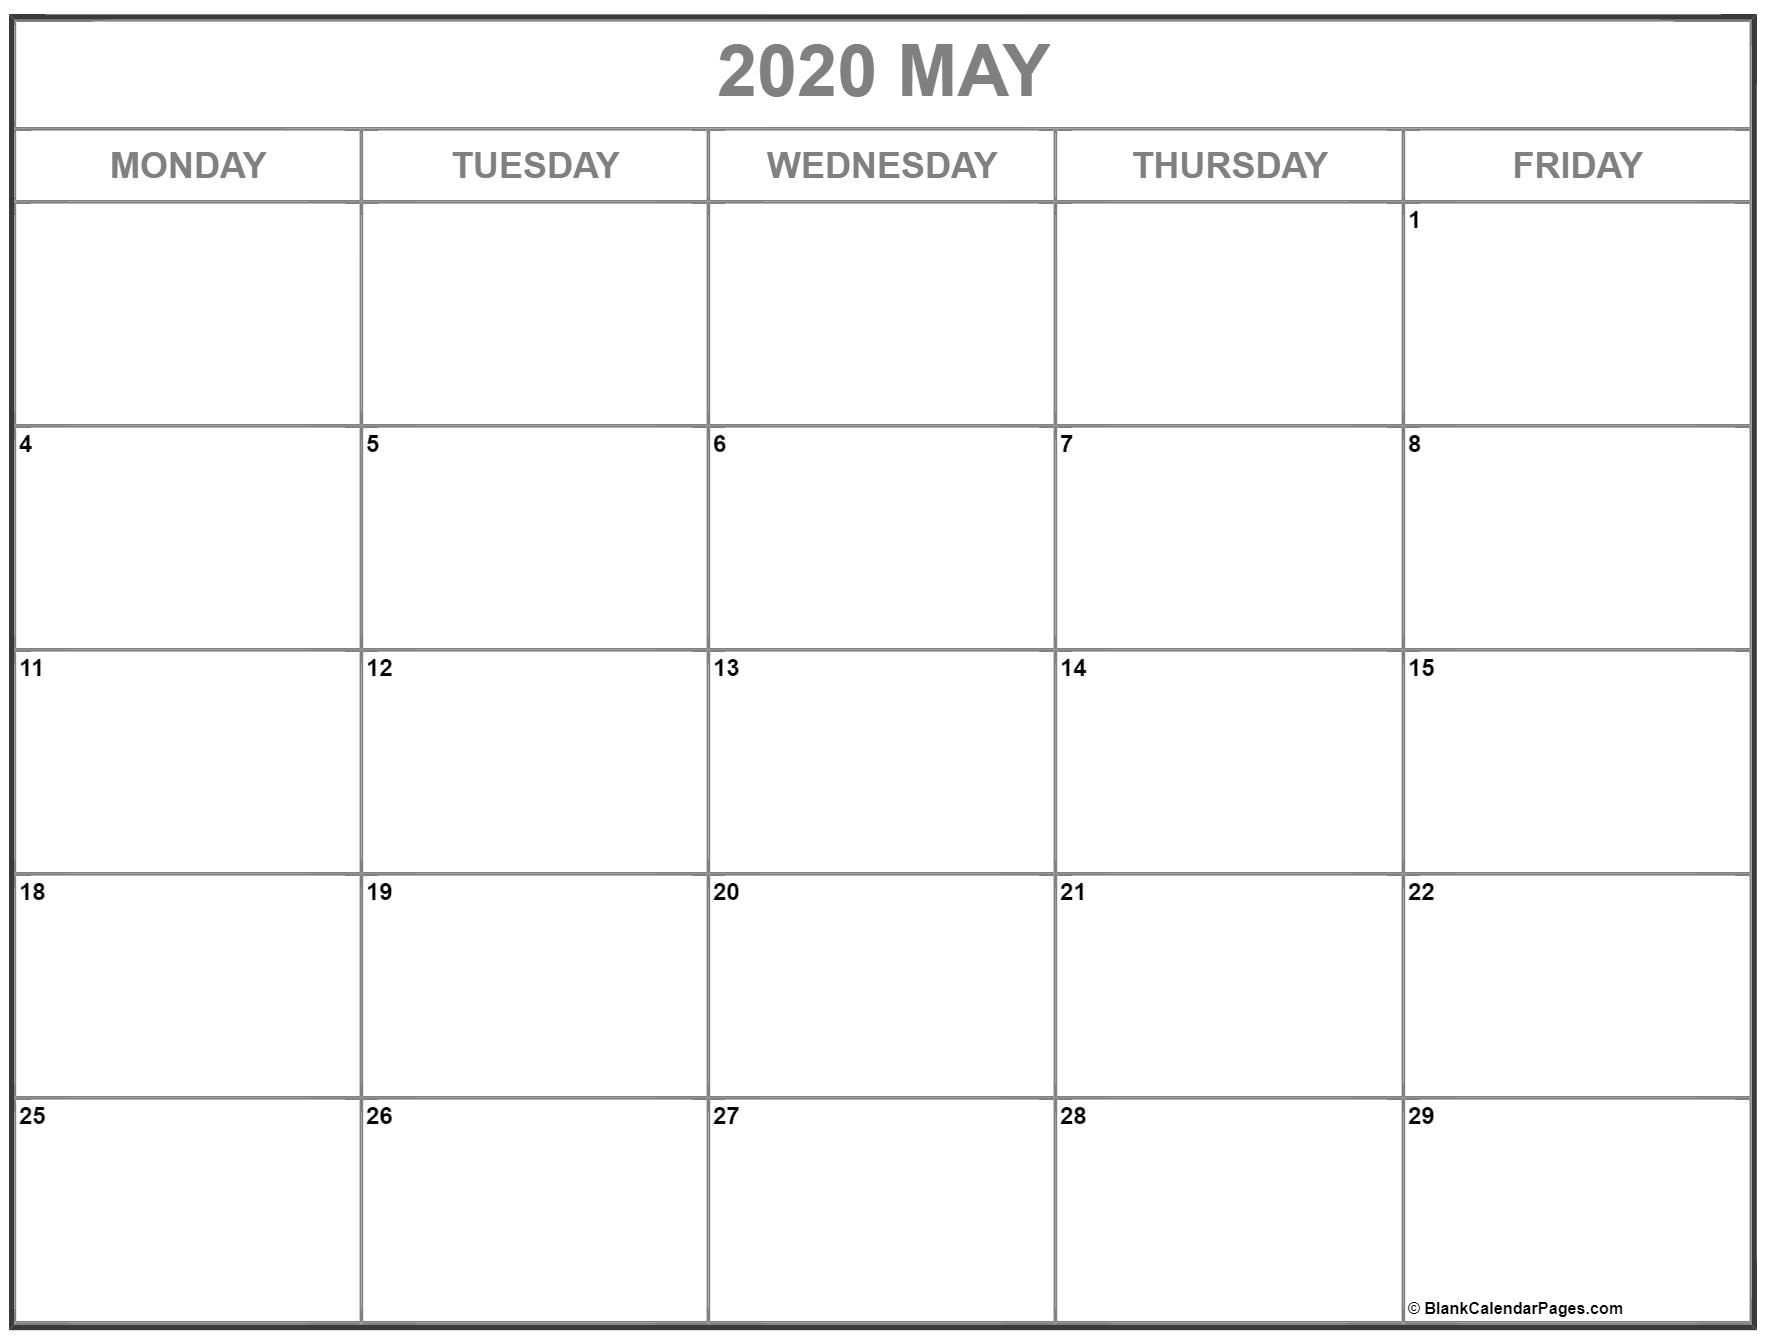 May 2020 Monday Calendar | Monday To Sunday